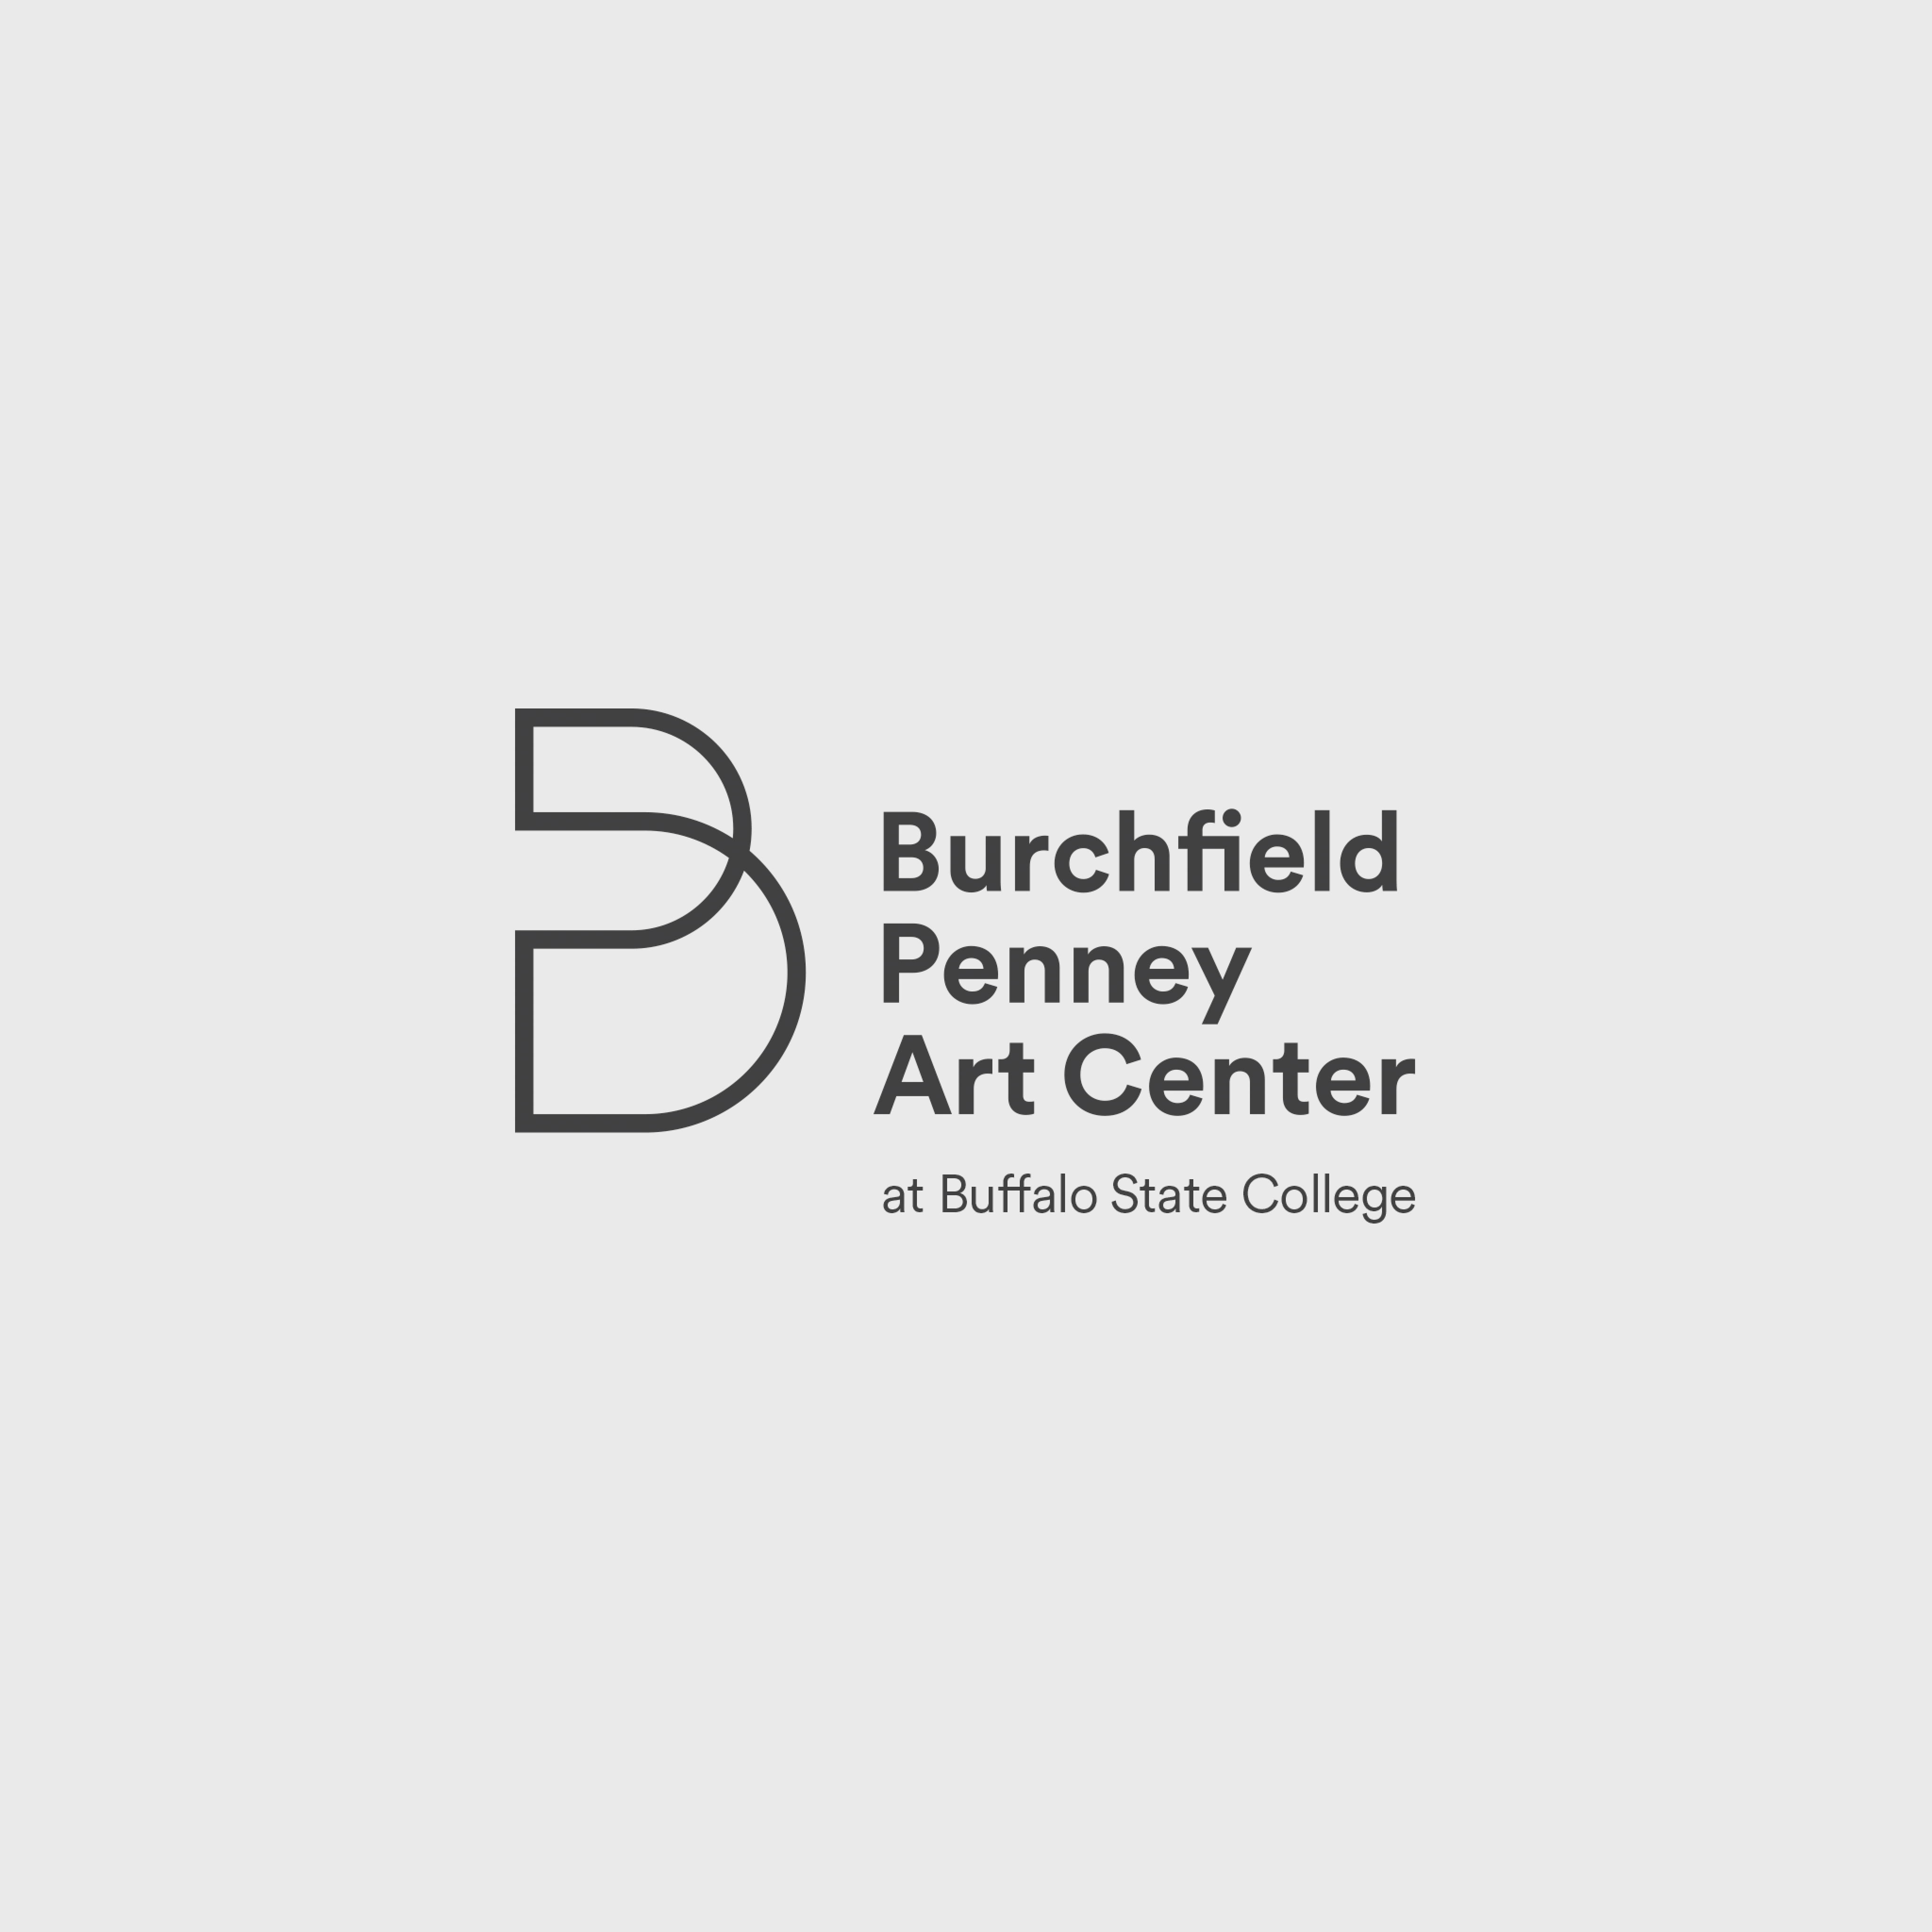 Volume 38, Page 30 > Collection > Burchfield Penney Art Center